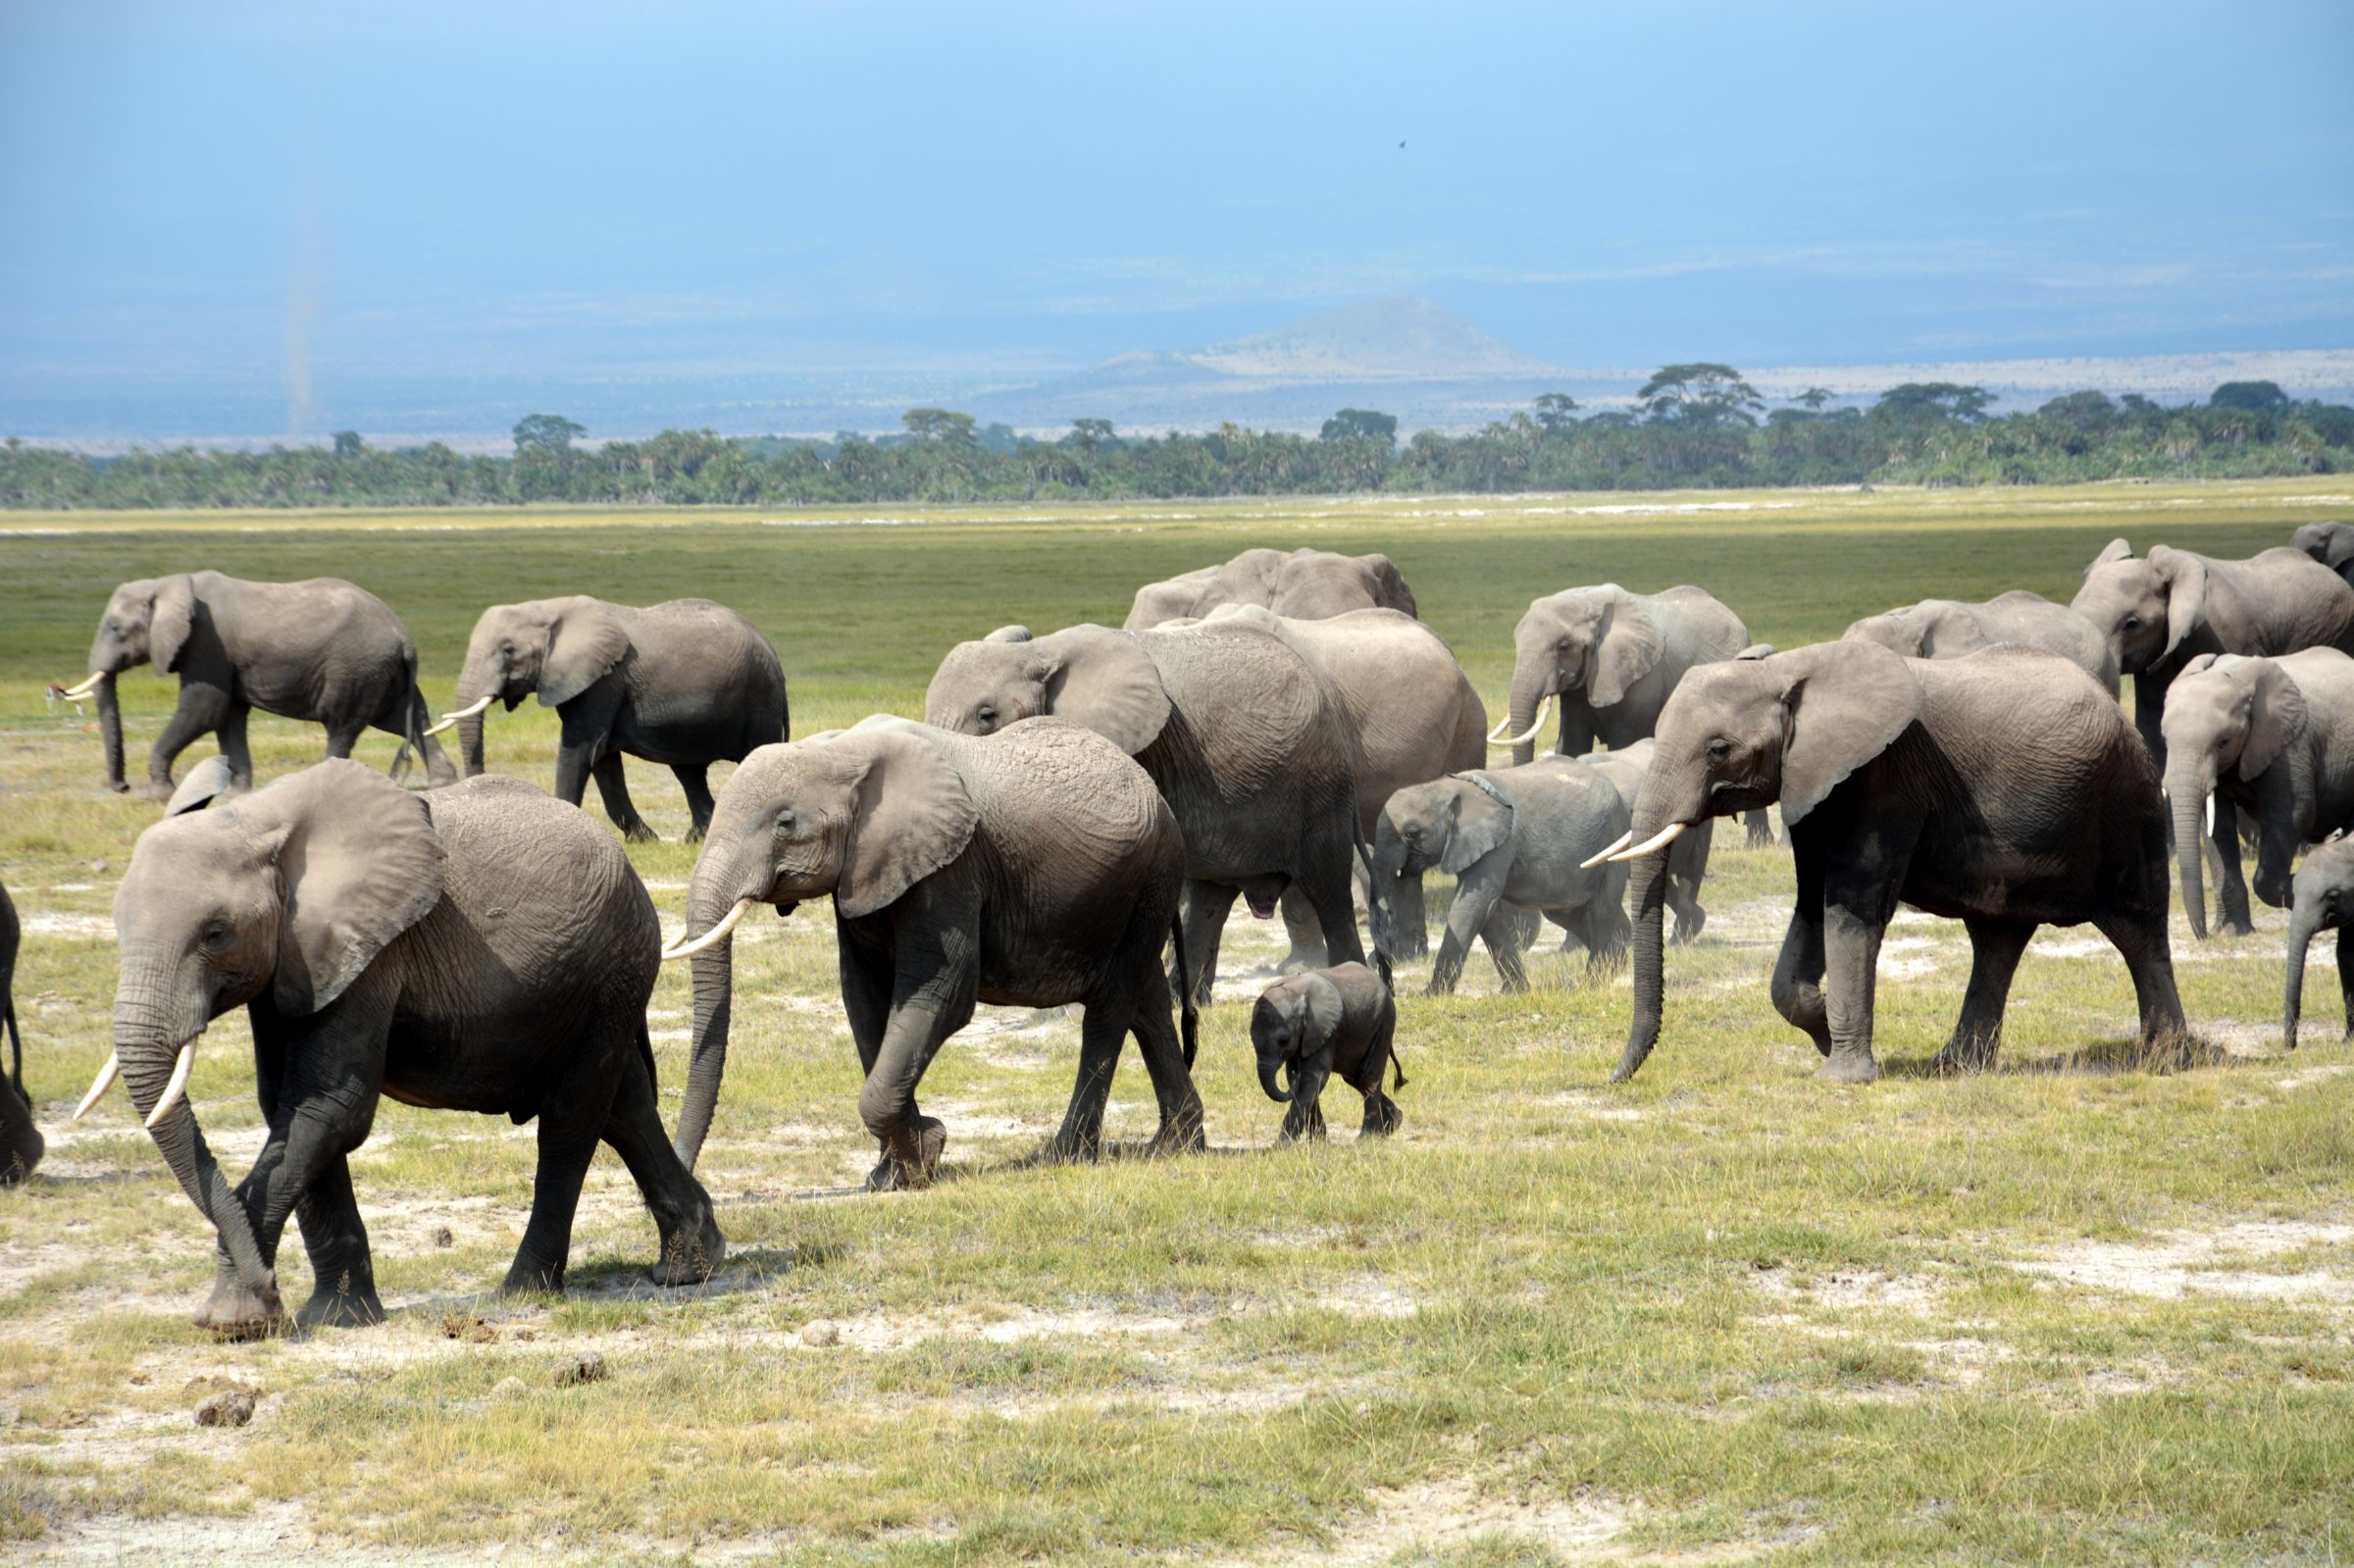 There must have been more than 40 elephants in this herd! (Photo: Shasta Bray)